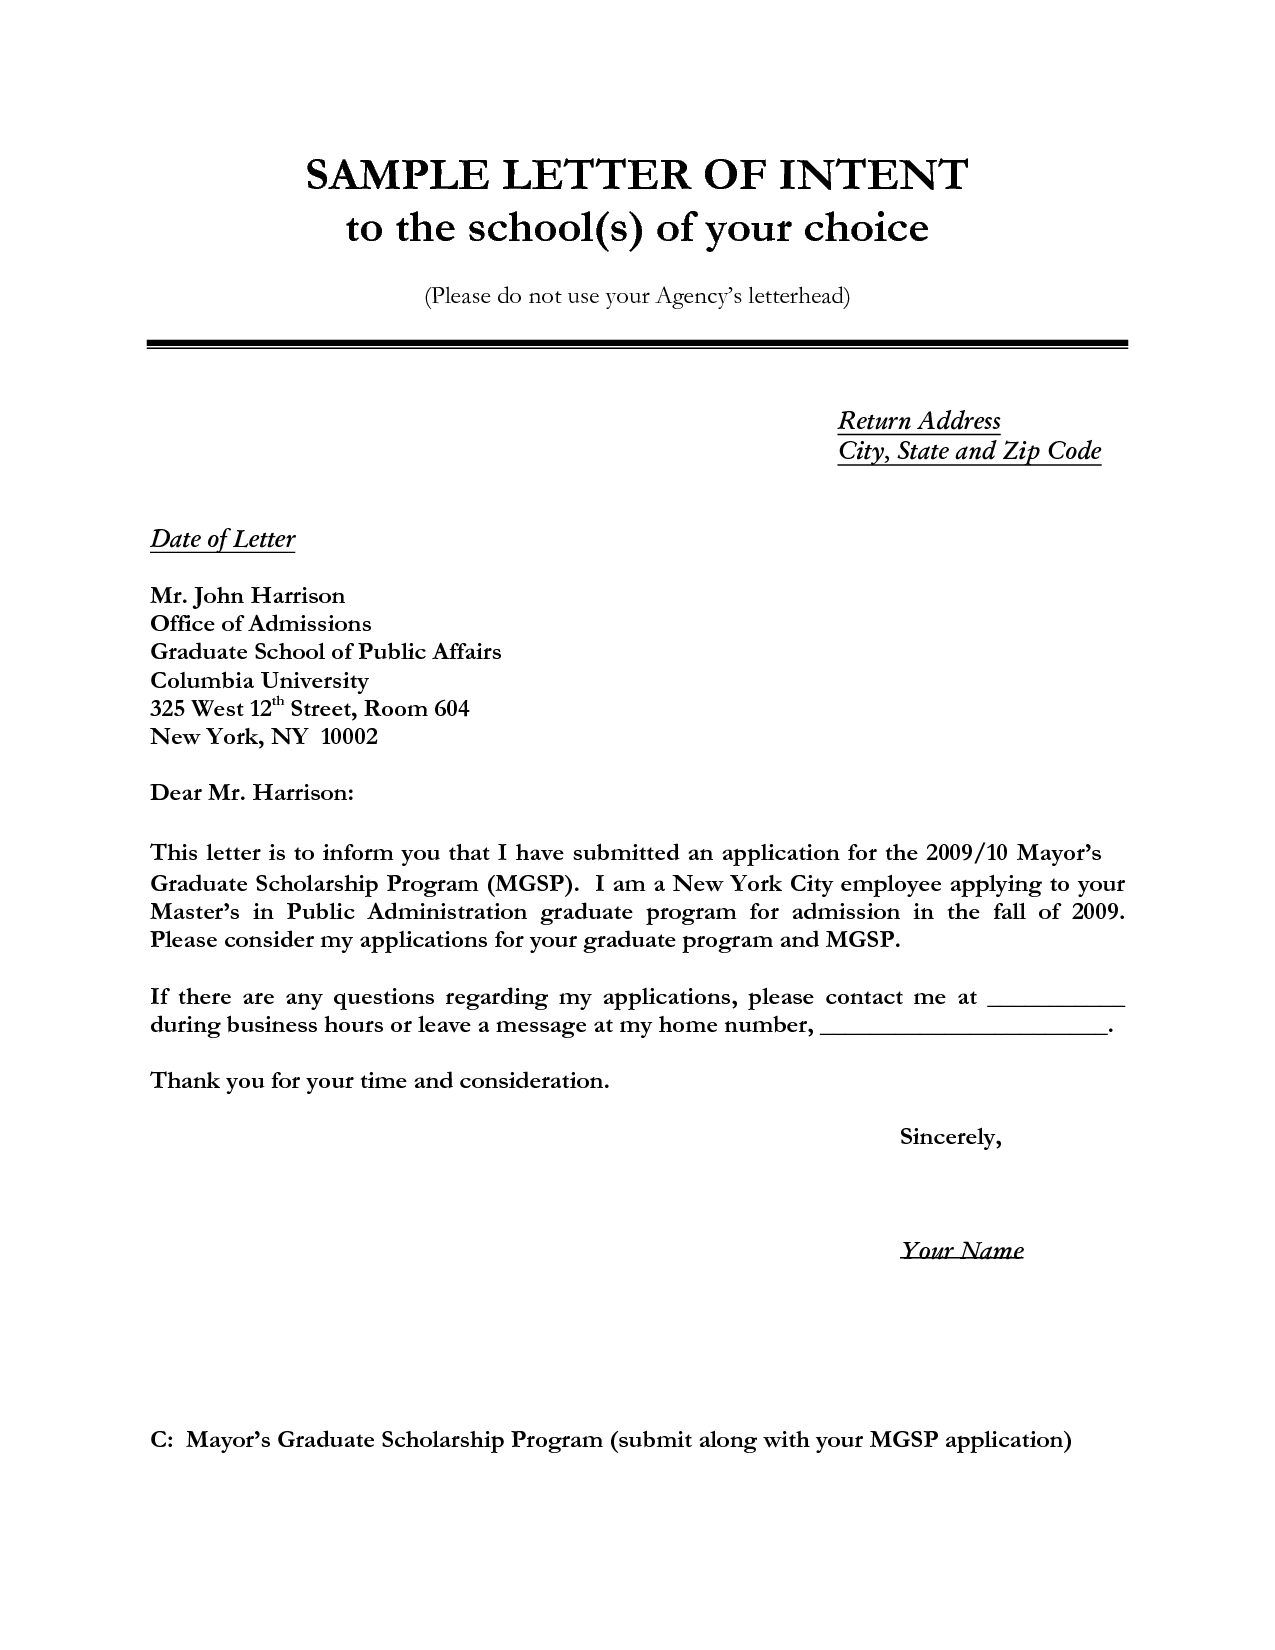 Free Real Estate Letter Of Intent Template - Letter Of Intent Sample